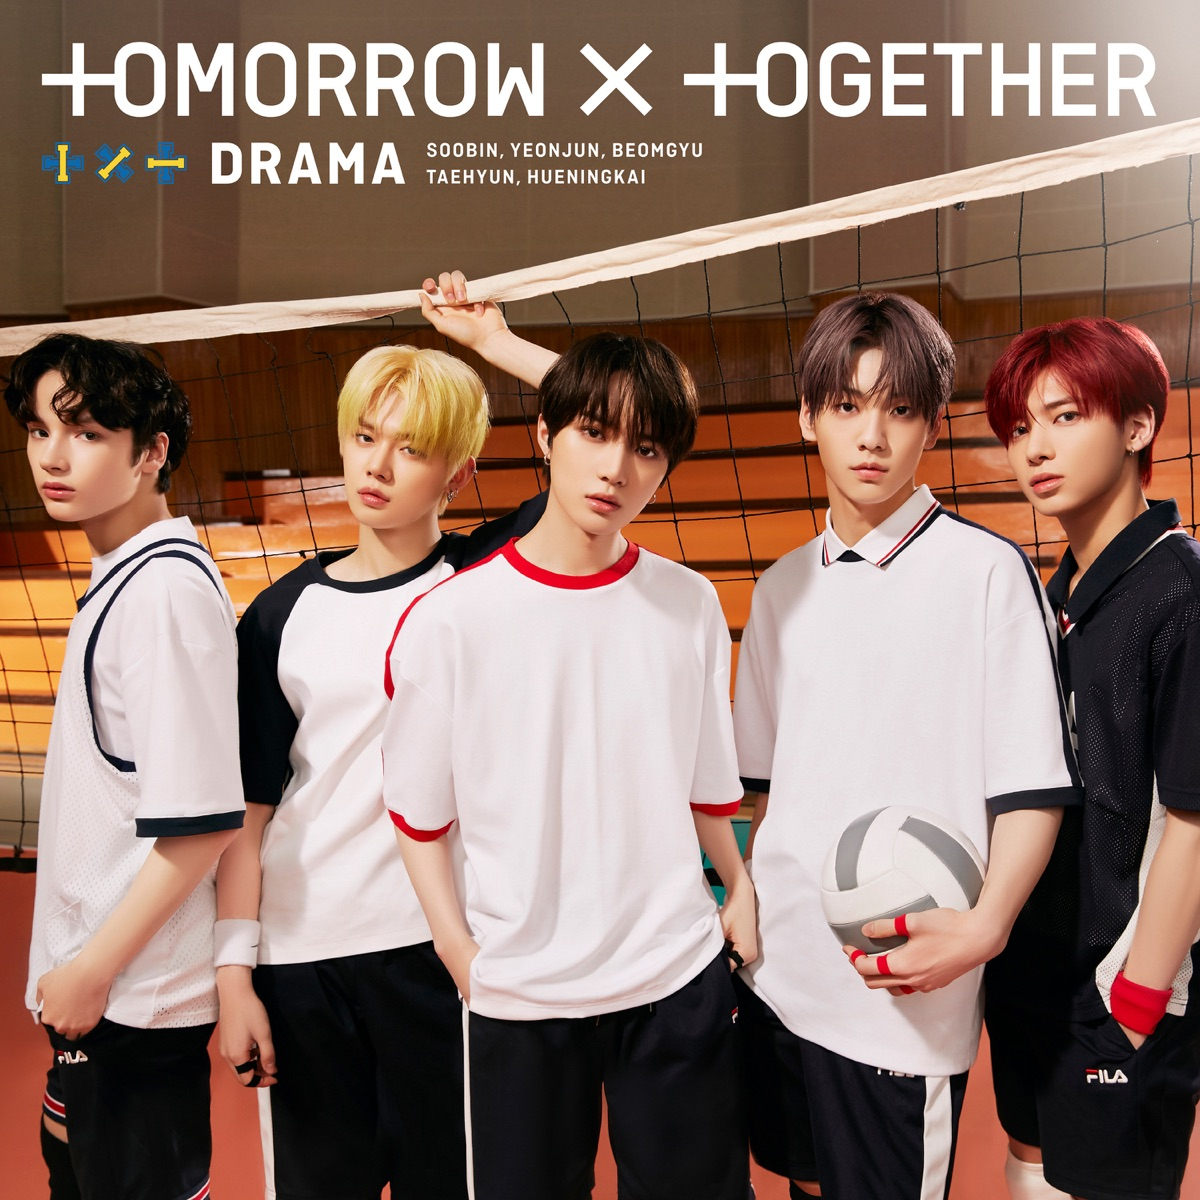 『TOMORROW X TOGETHER - Drama [Japanese Ver.]』収録の『DRAMA』ジャケット